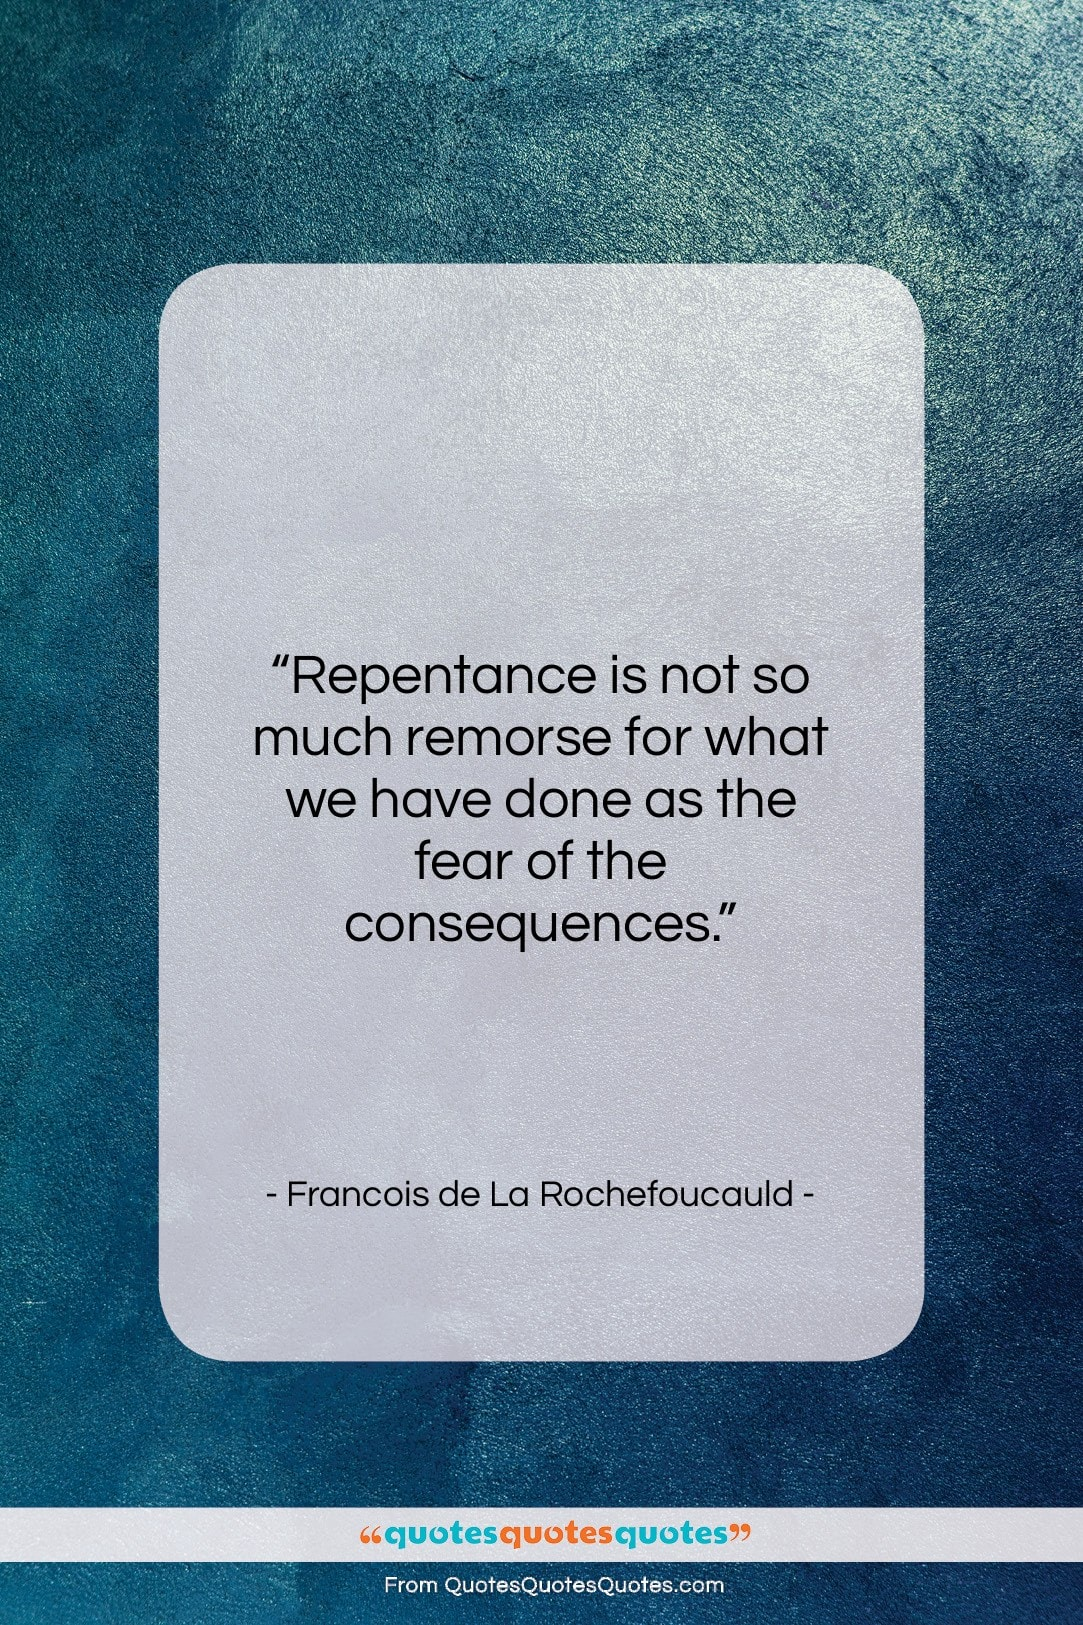 """Francois de La Rochefoucauld quote: """"Repentance is not so much remorse for…""""- at QuotesQuotesQuotes.com"""